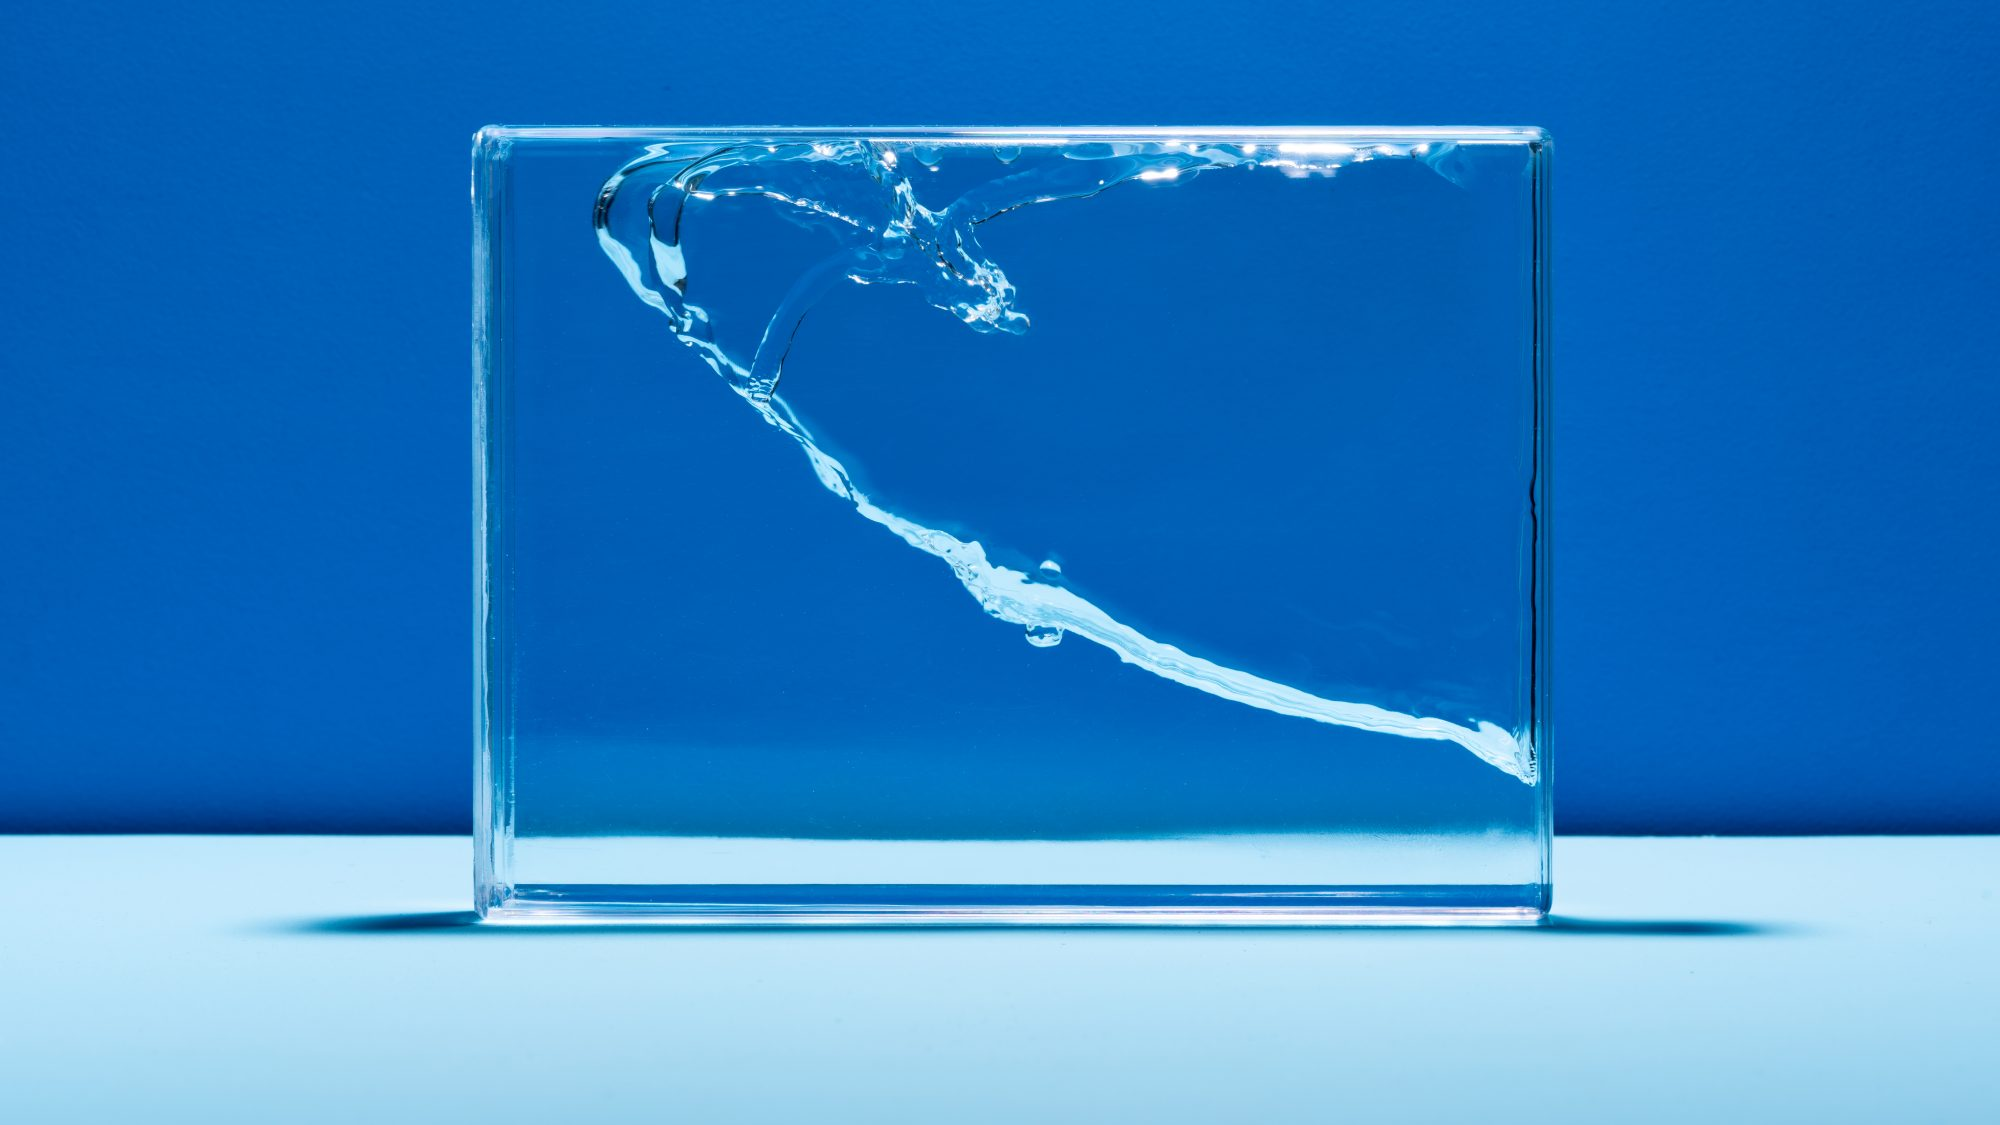 Small Things You Can Do to Save More Water: Water Splash in Glass Box Against Blue Colored Background